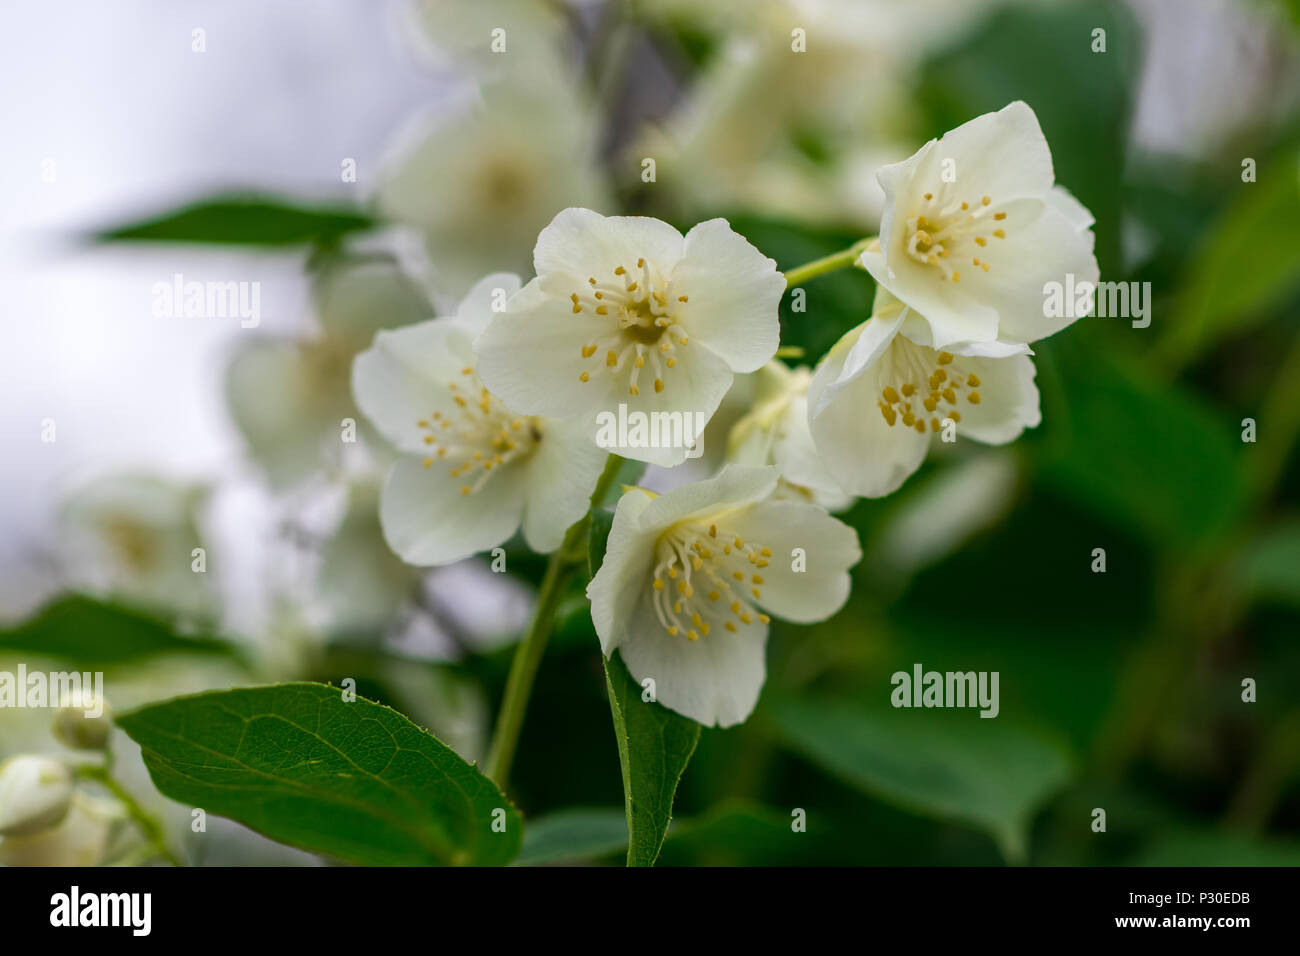 Close Up Of Jasmine Flowers In A Garden Stock Photo 208379735 Alamy